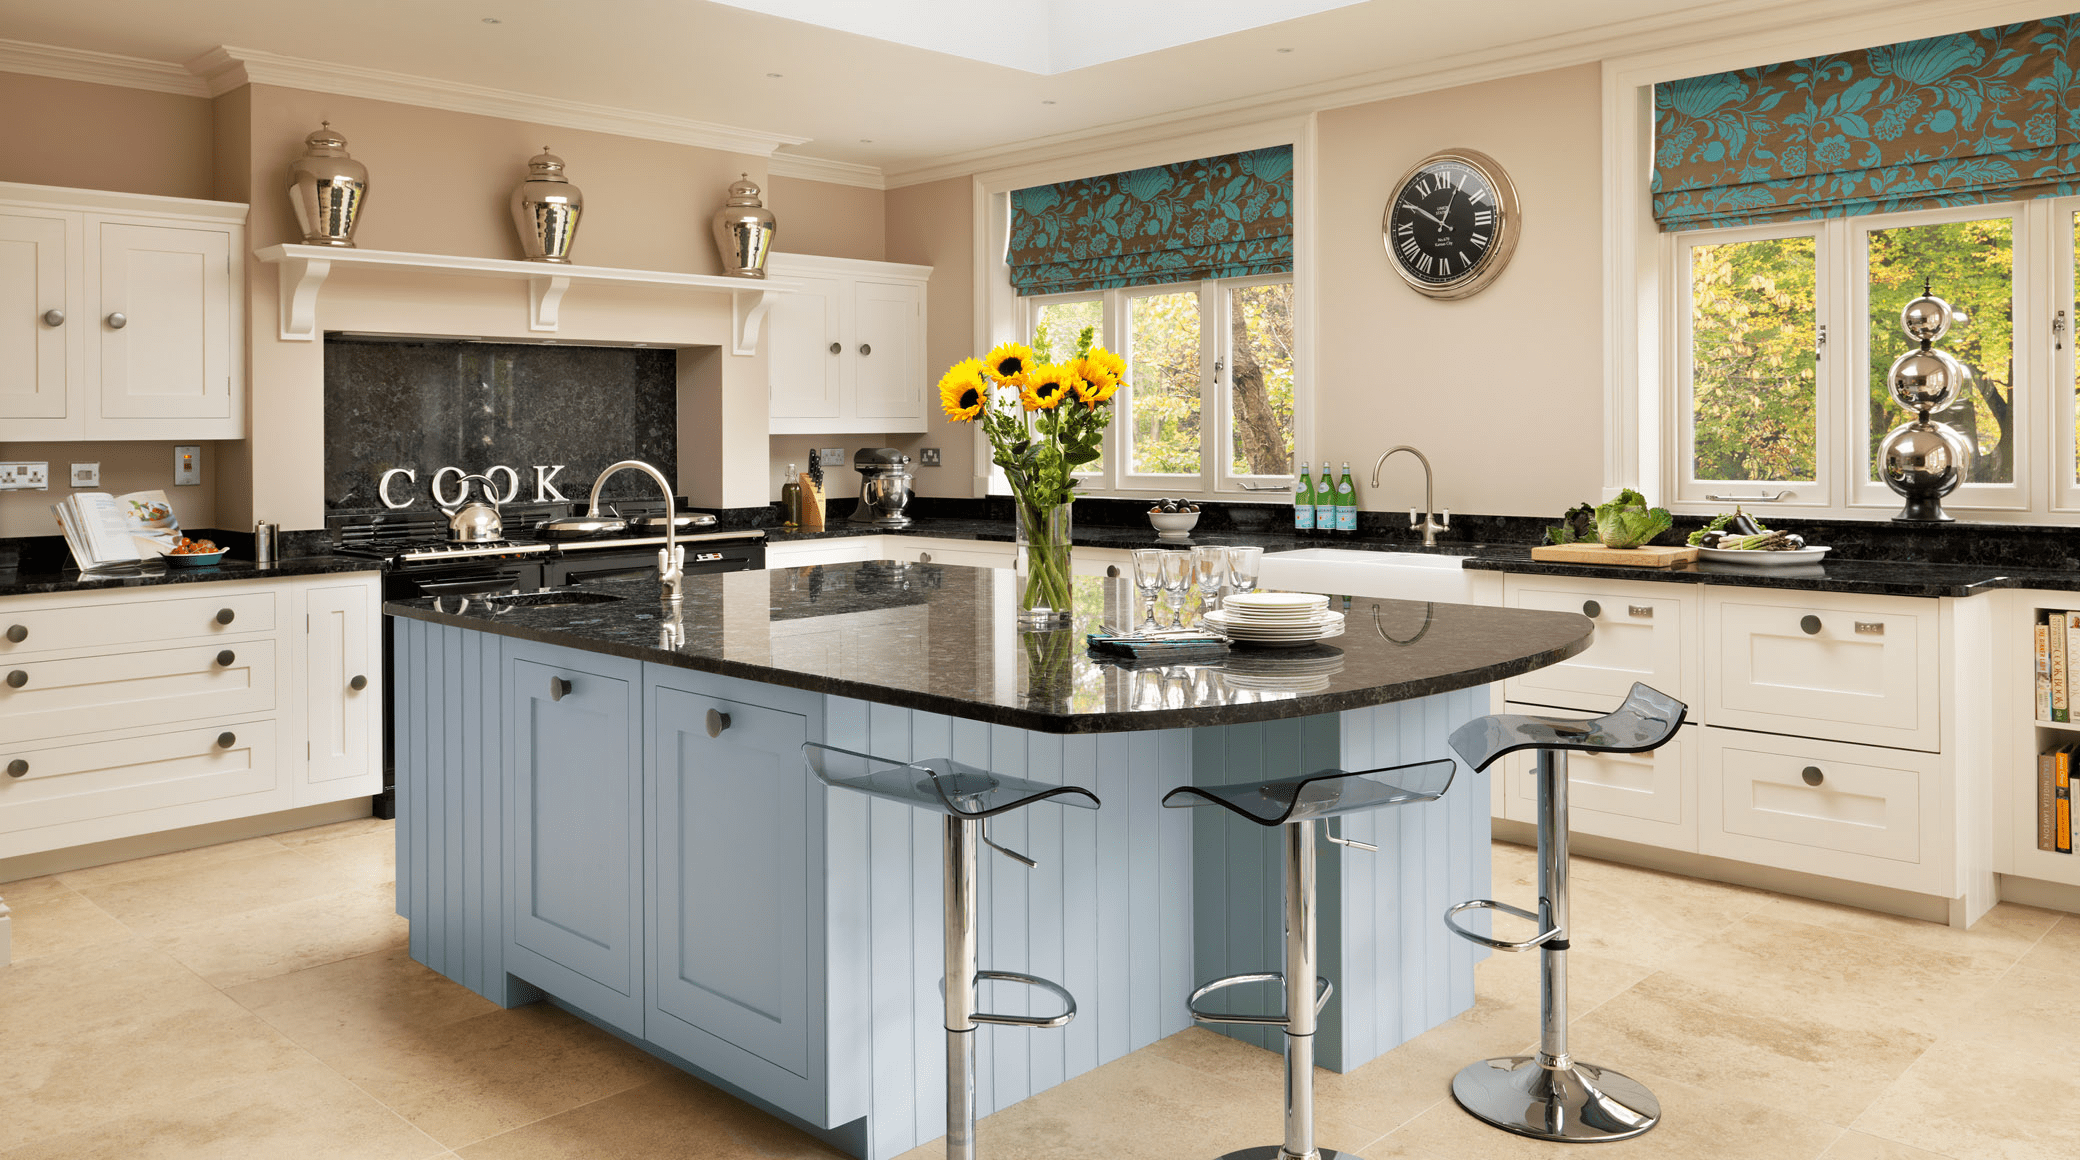 Kitchens - Modern,Tradditional & Shaker Designs in Slough ...